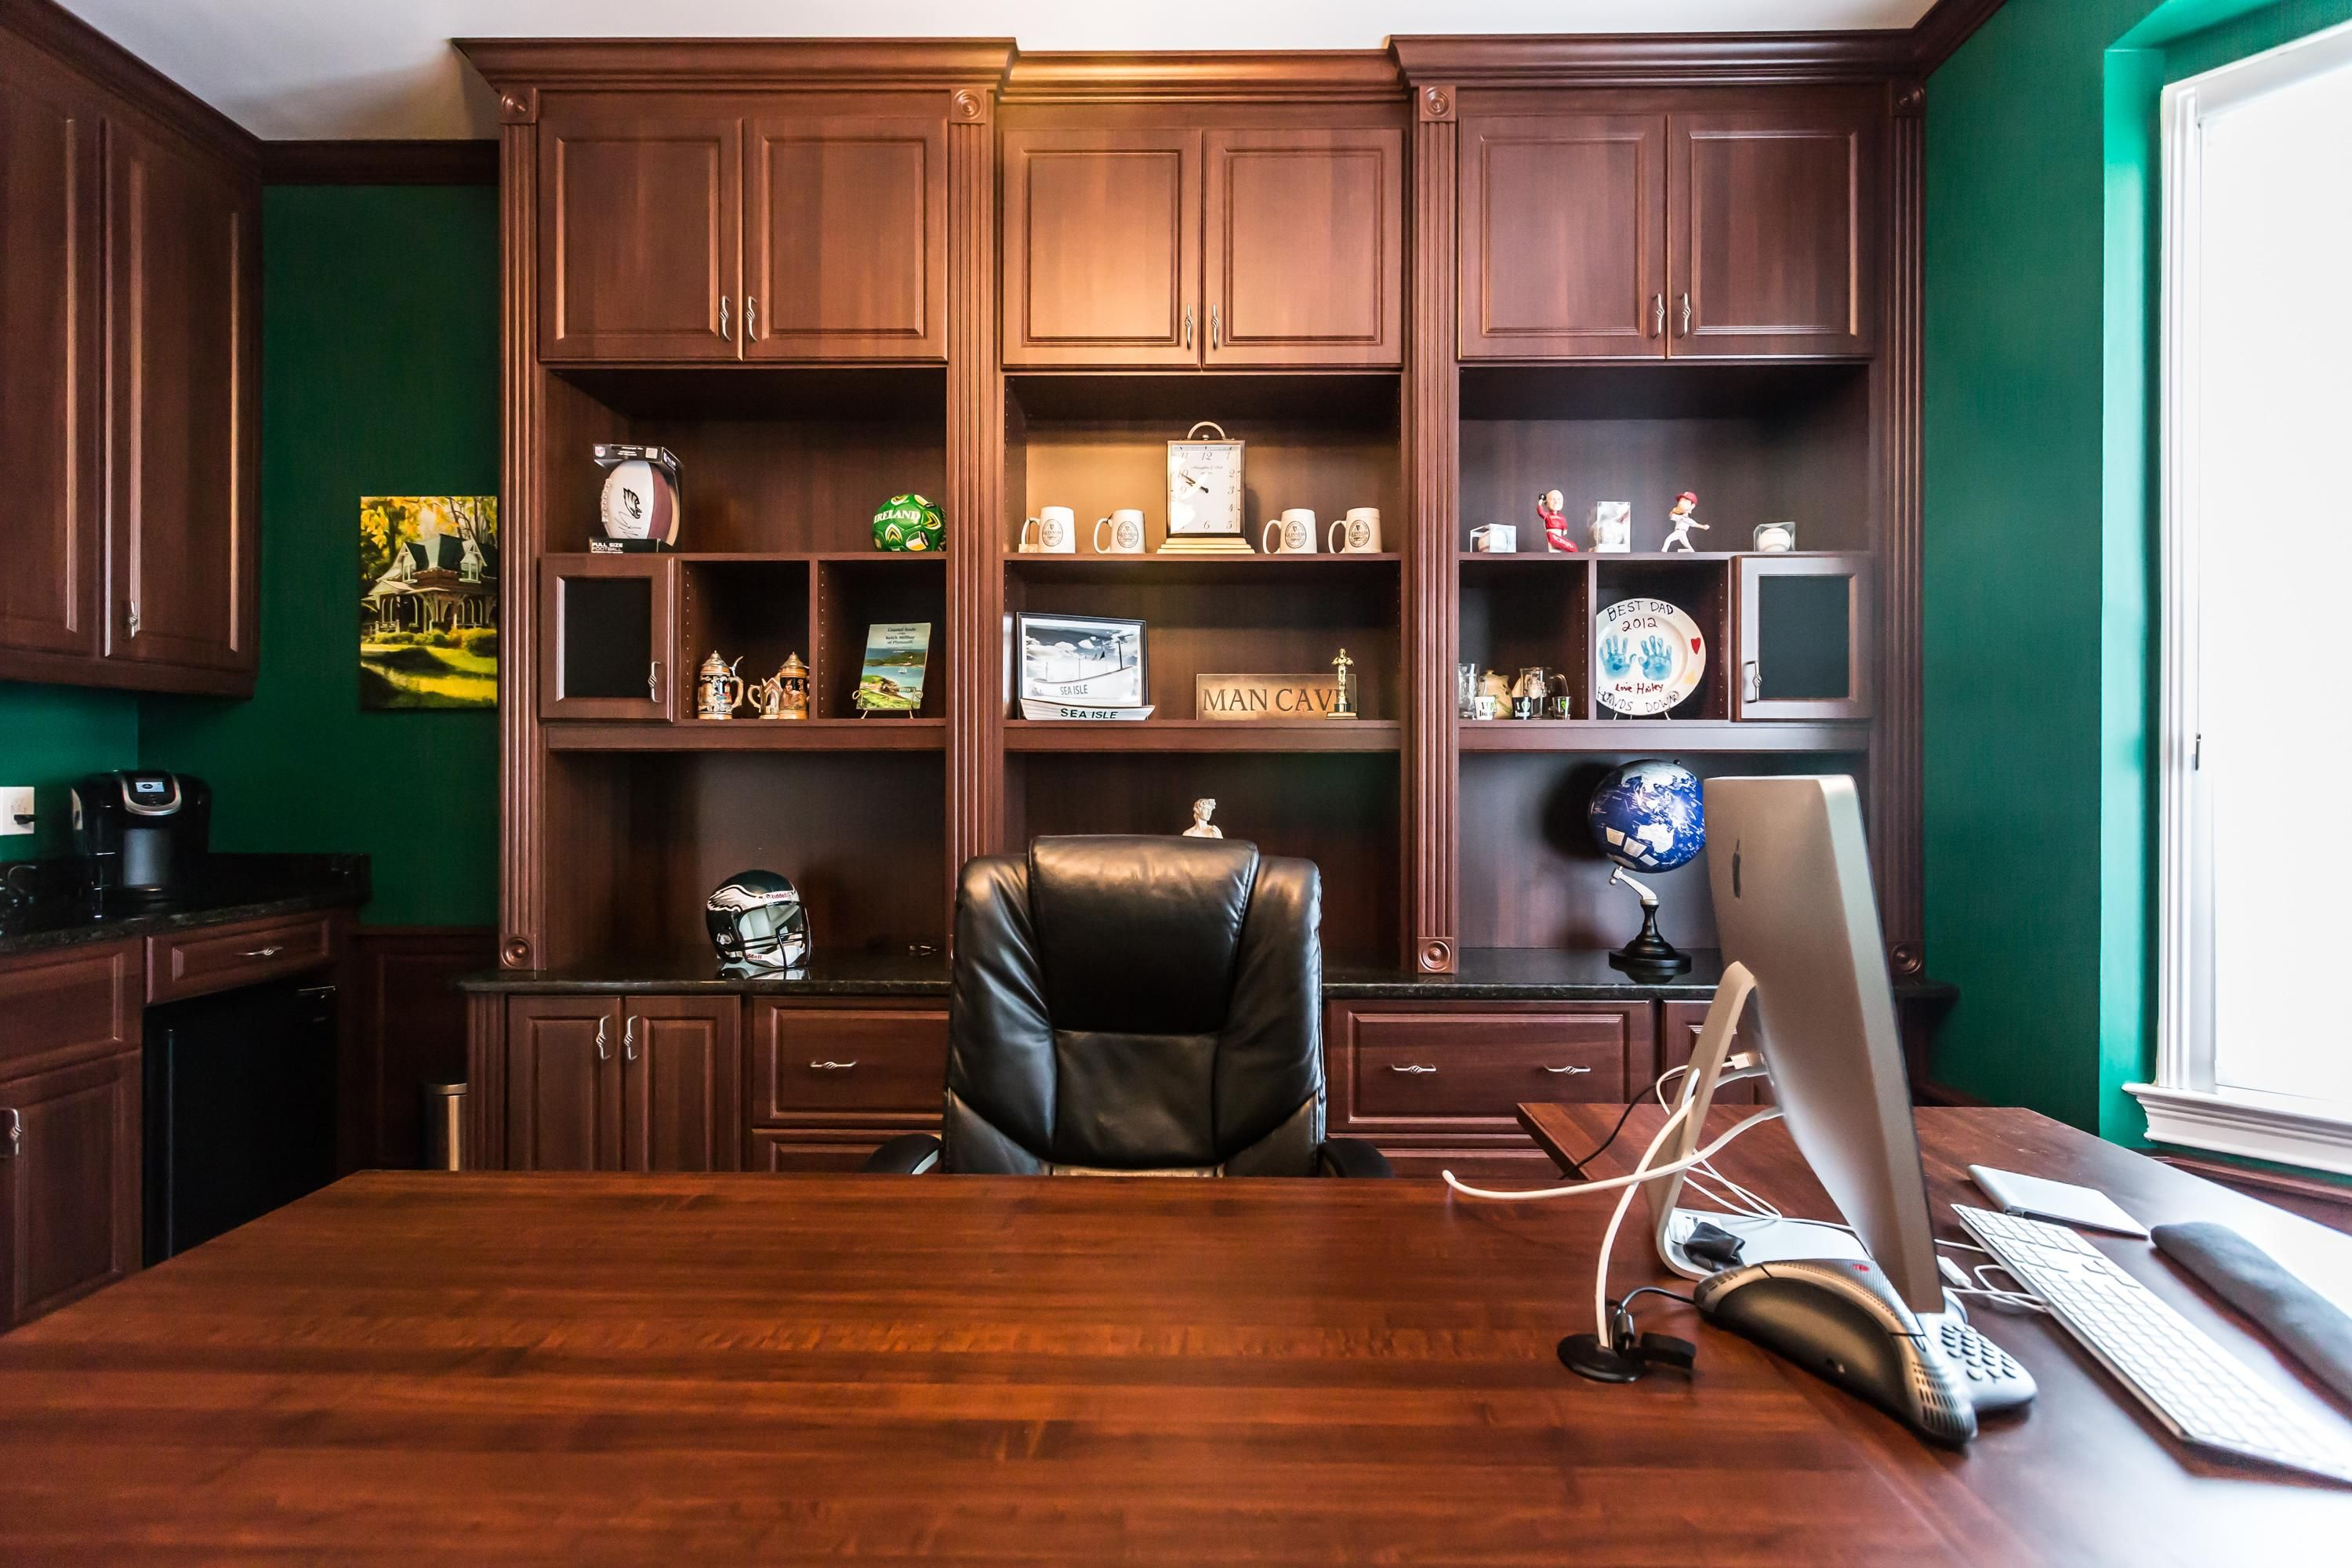 Office design by Karen R. of #CBD SE Pennsylvania | Offices by ...